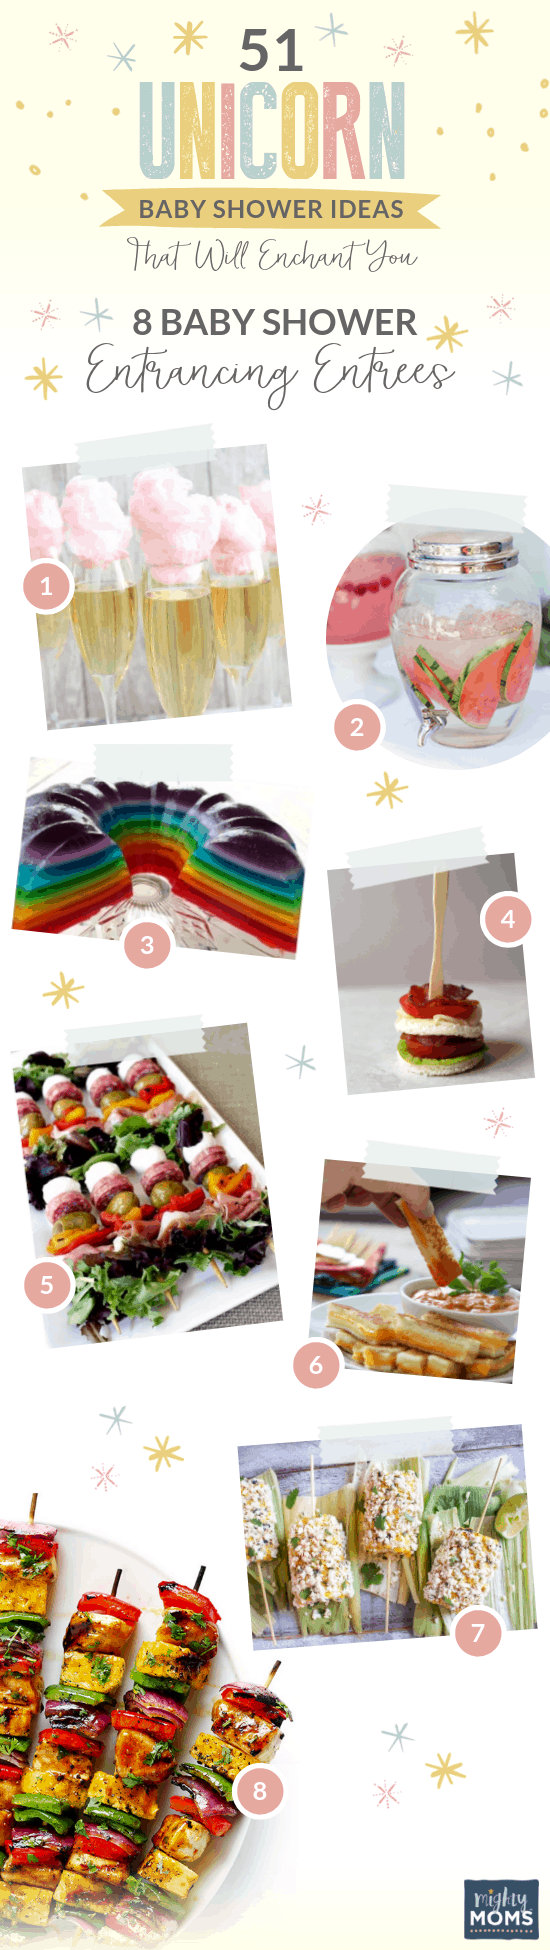 8 Delicious Unicorn Baby Shower Dishes - MightyMoms.club